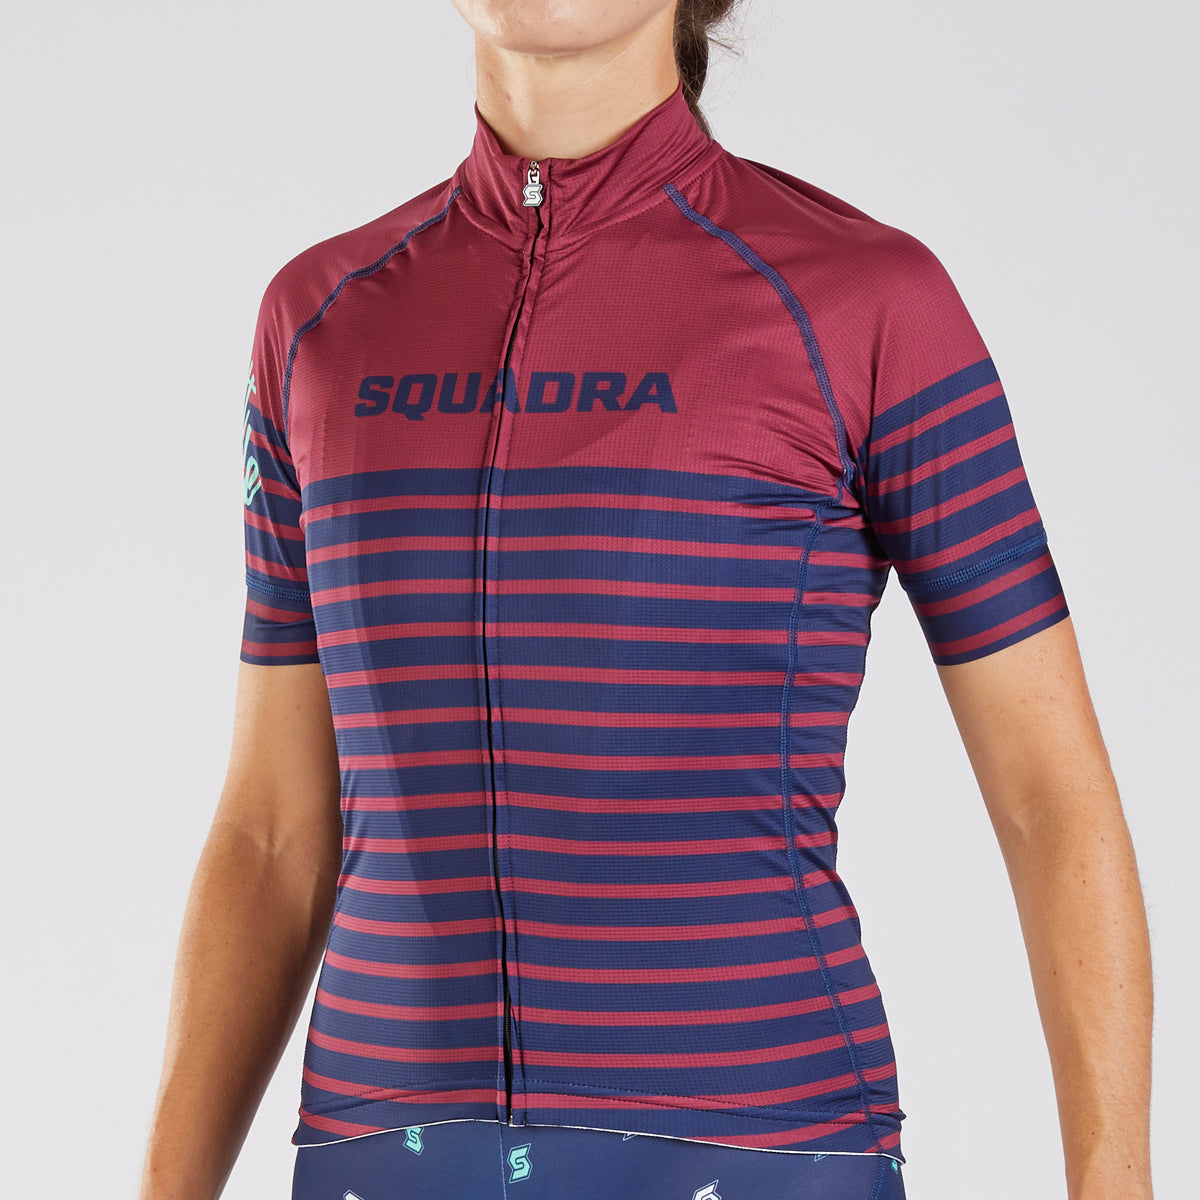 WOMENS PRO ISSUE S/S JERSEY - BANDA